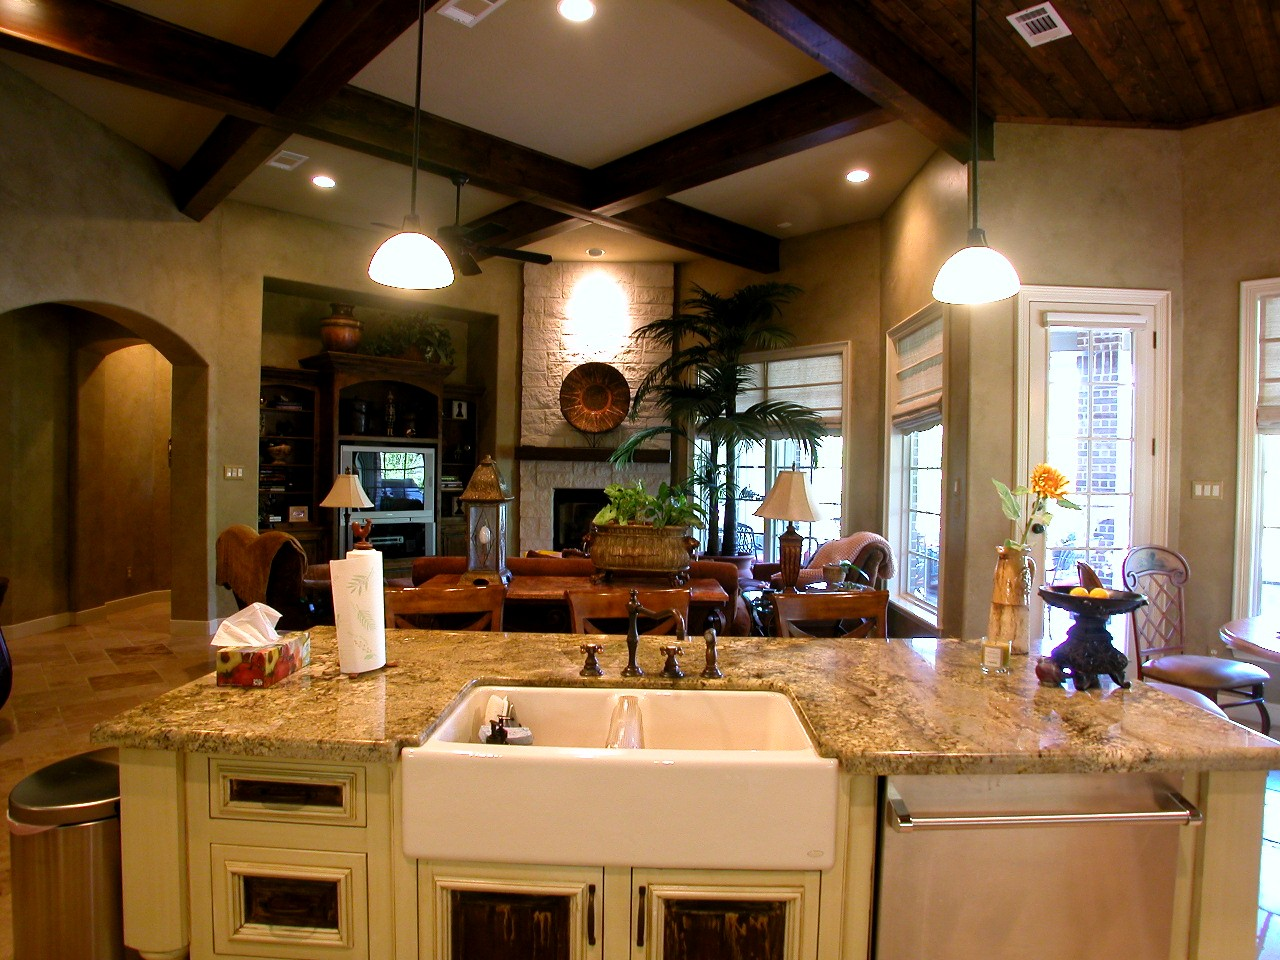 This is the page for Kitchen and great room designs